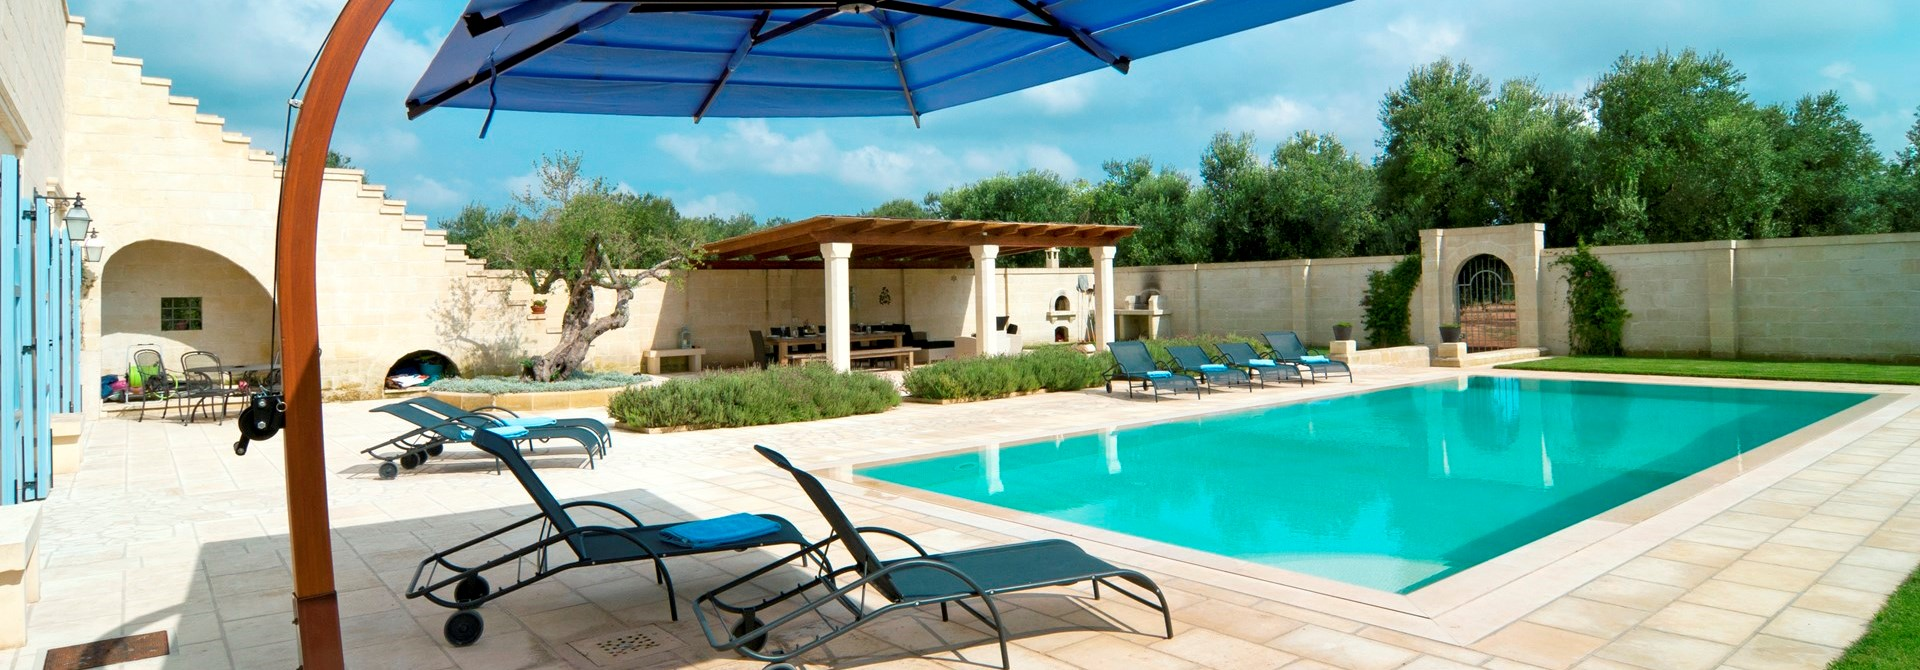 masseria-salentina-puglia-swimming-pool